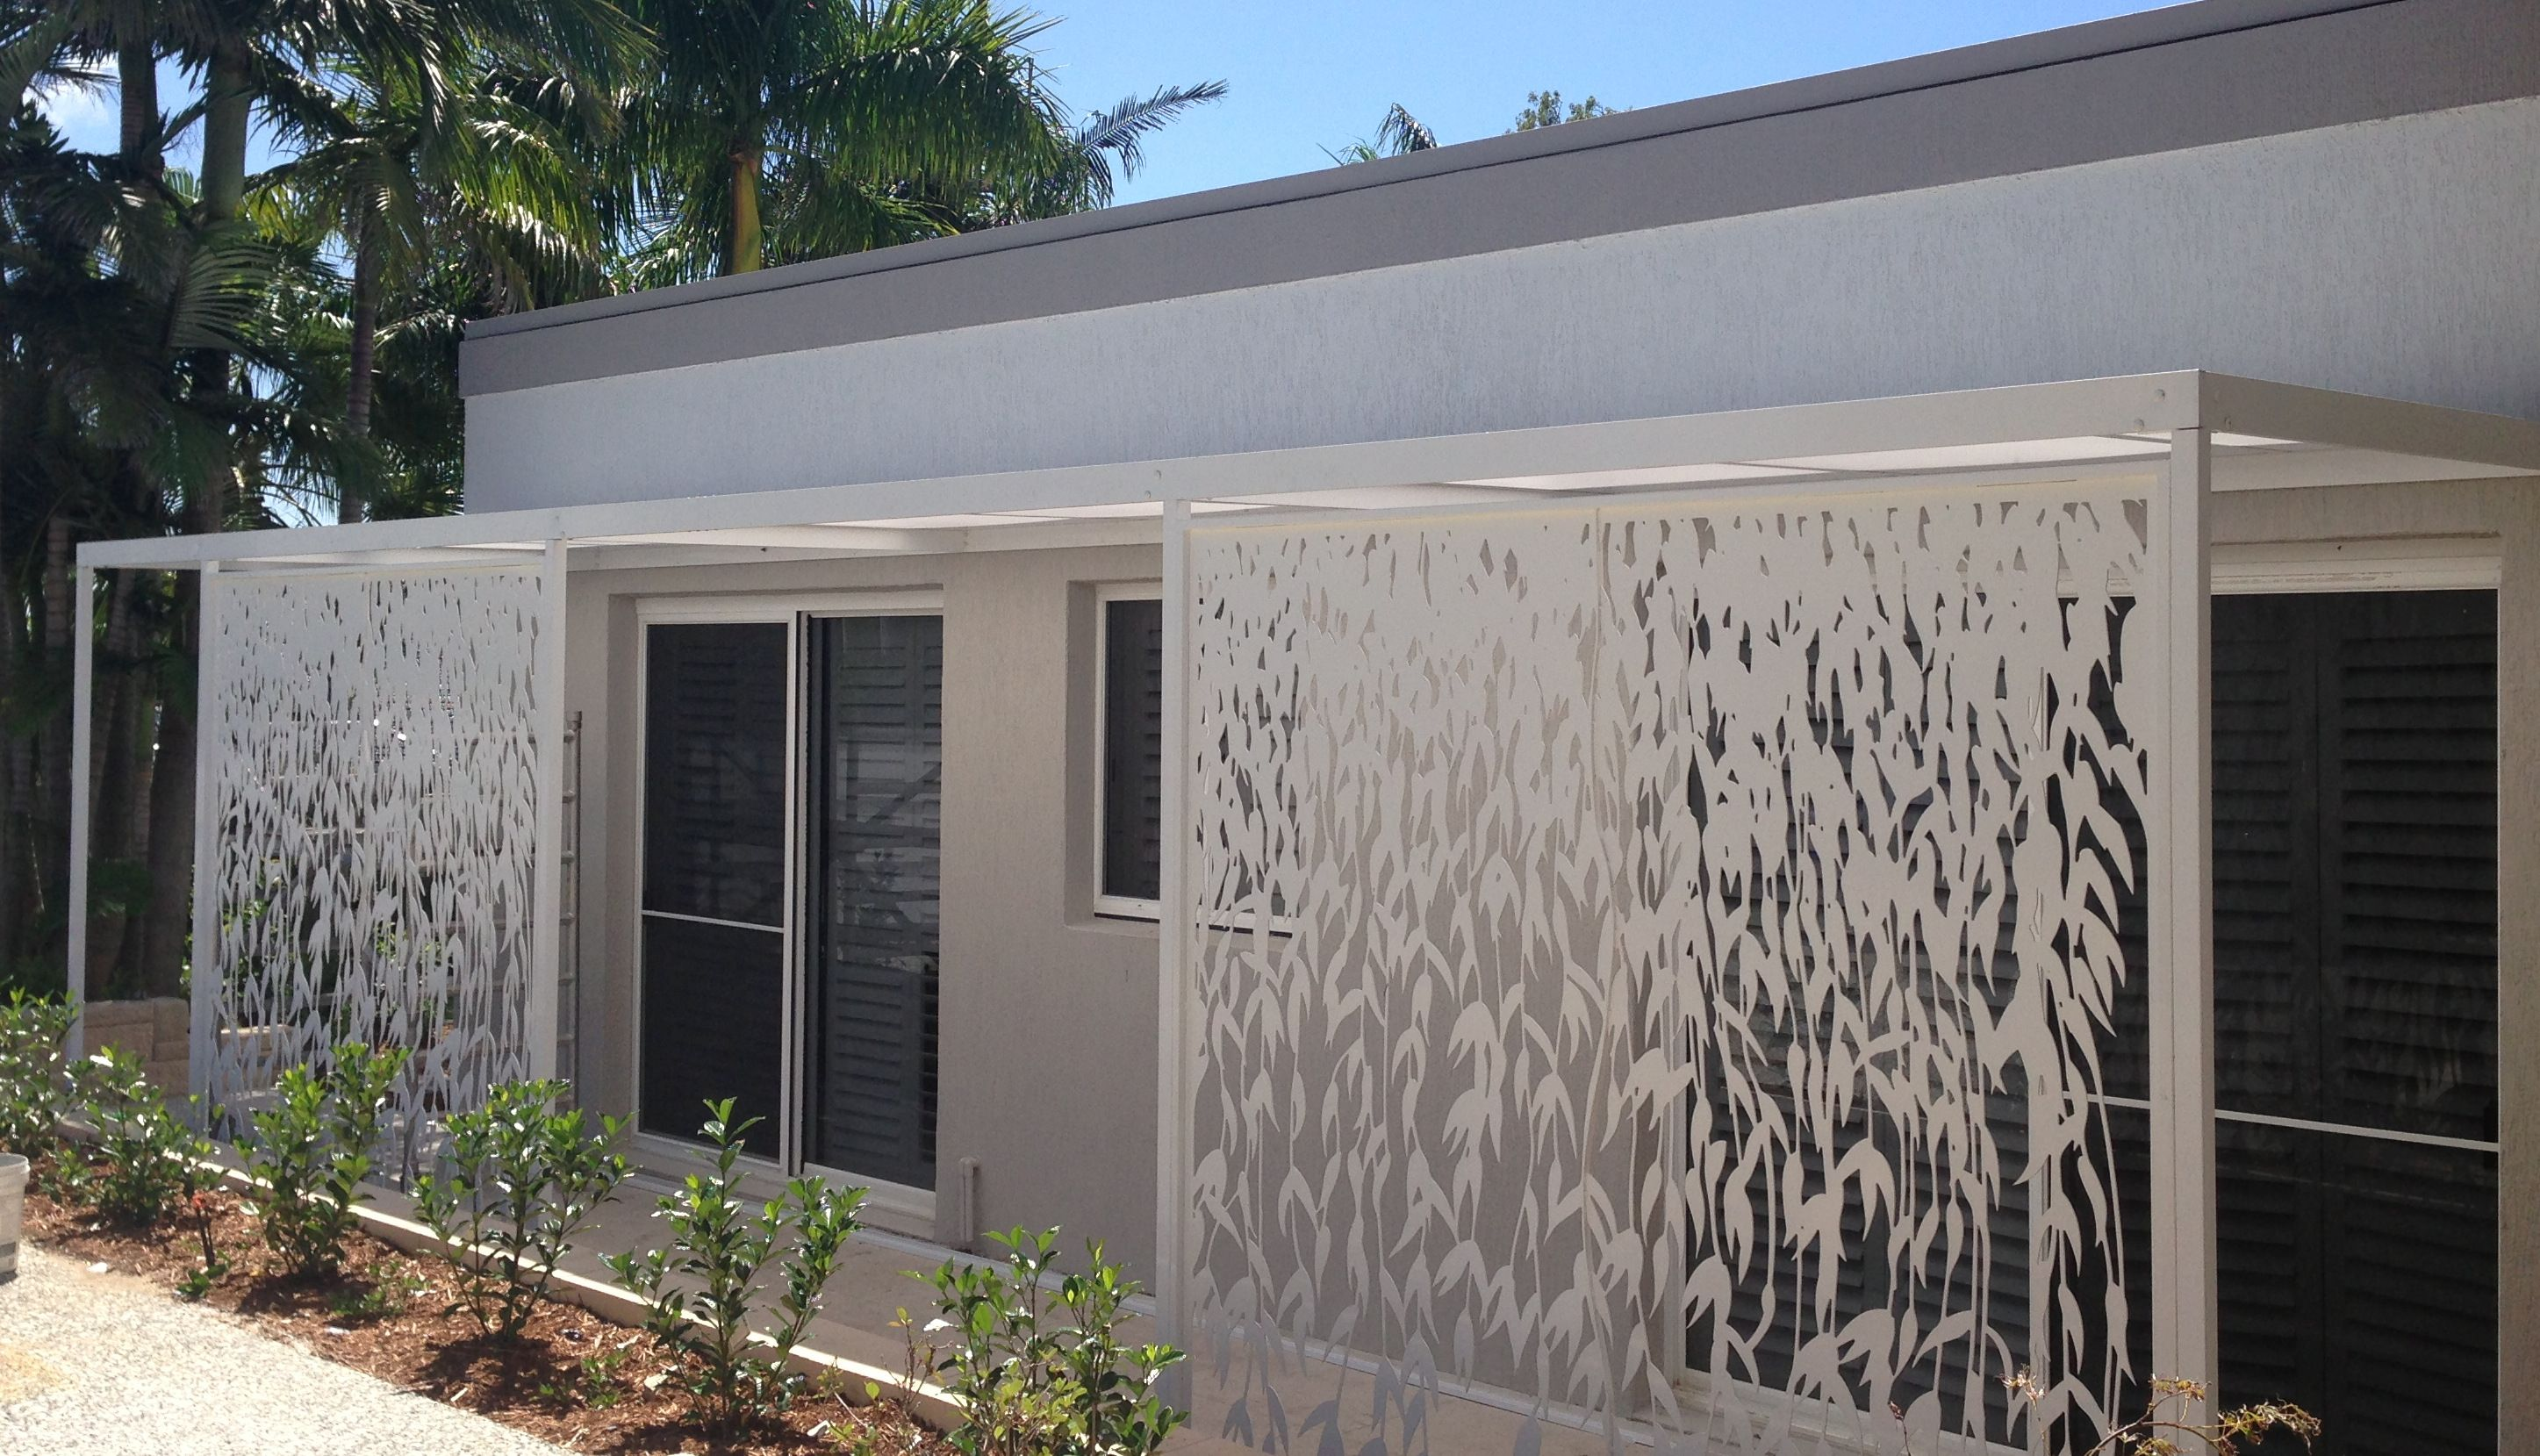 Screen Art Privacy Screen   Residential Exterior. Http://www.screenart.